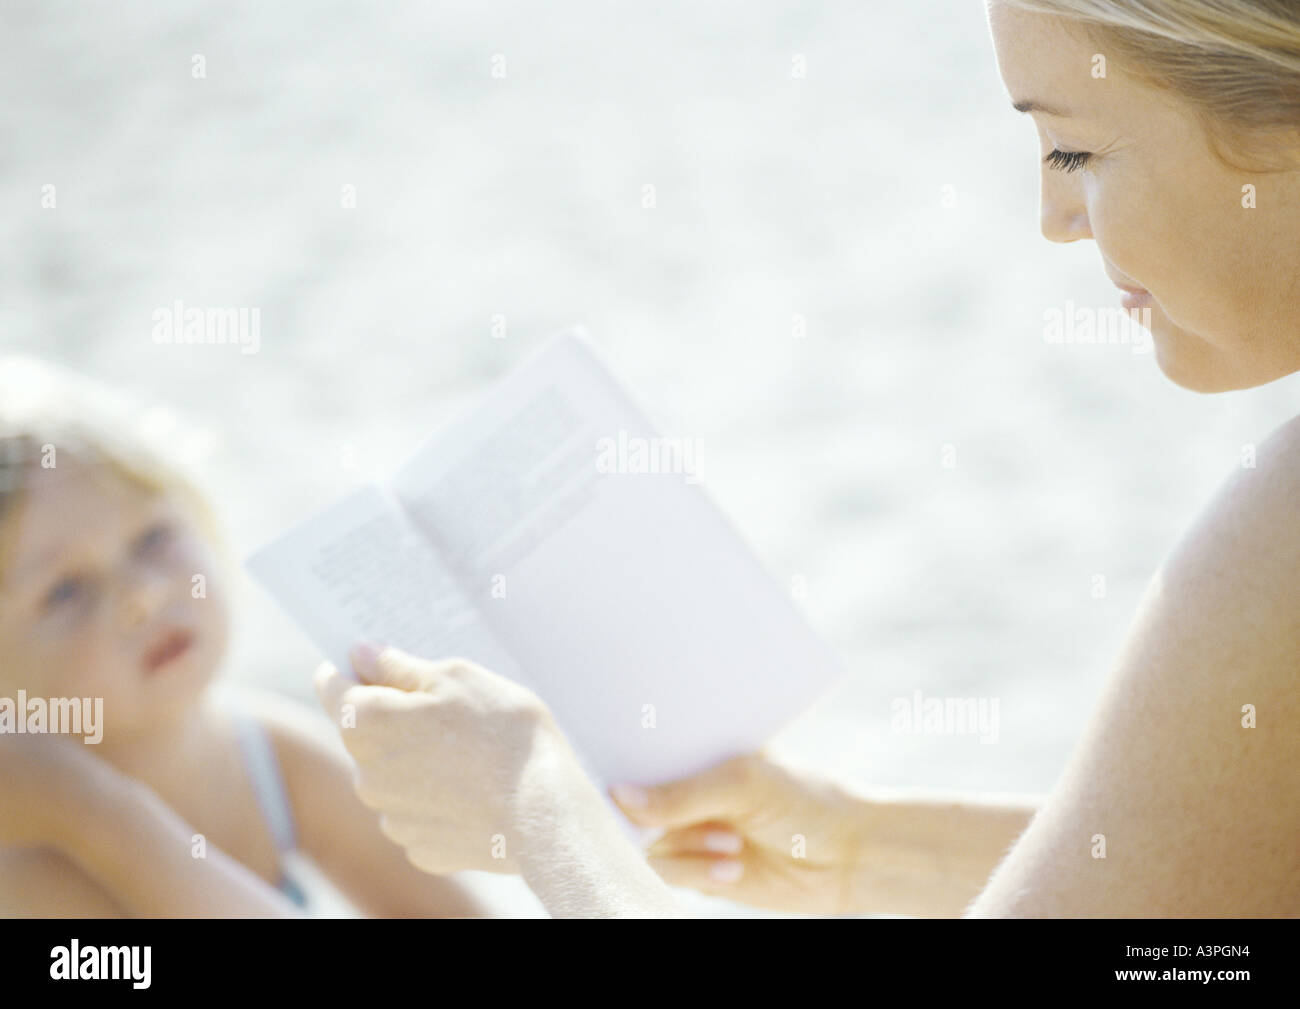 Woman reading book, child looking up at woman - Stock Image